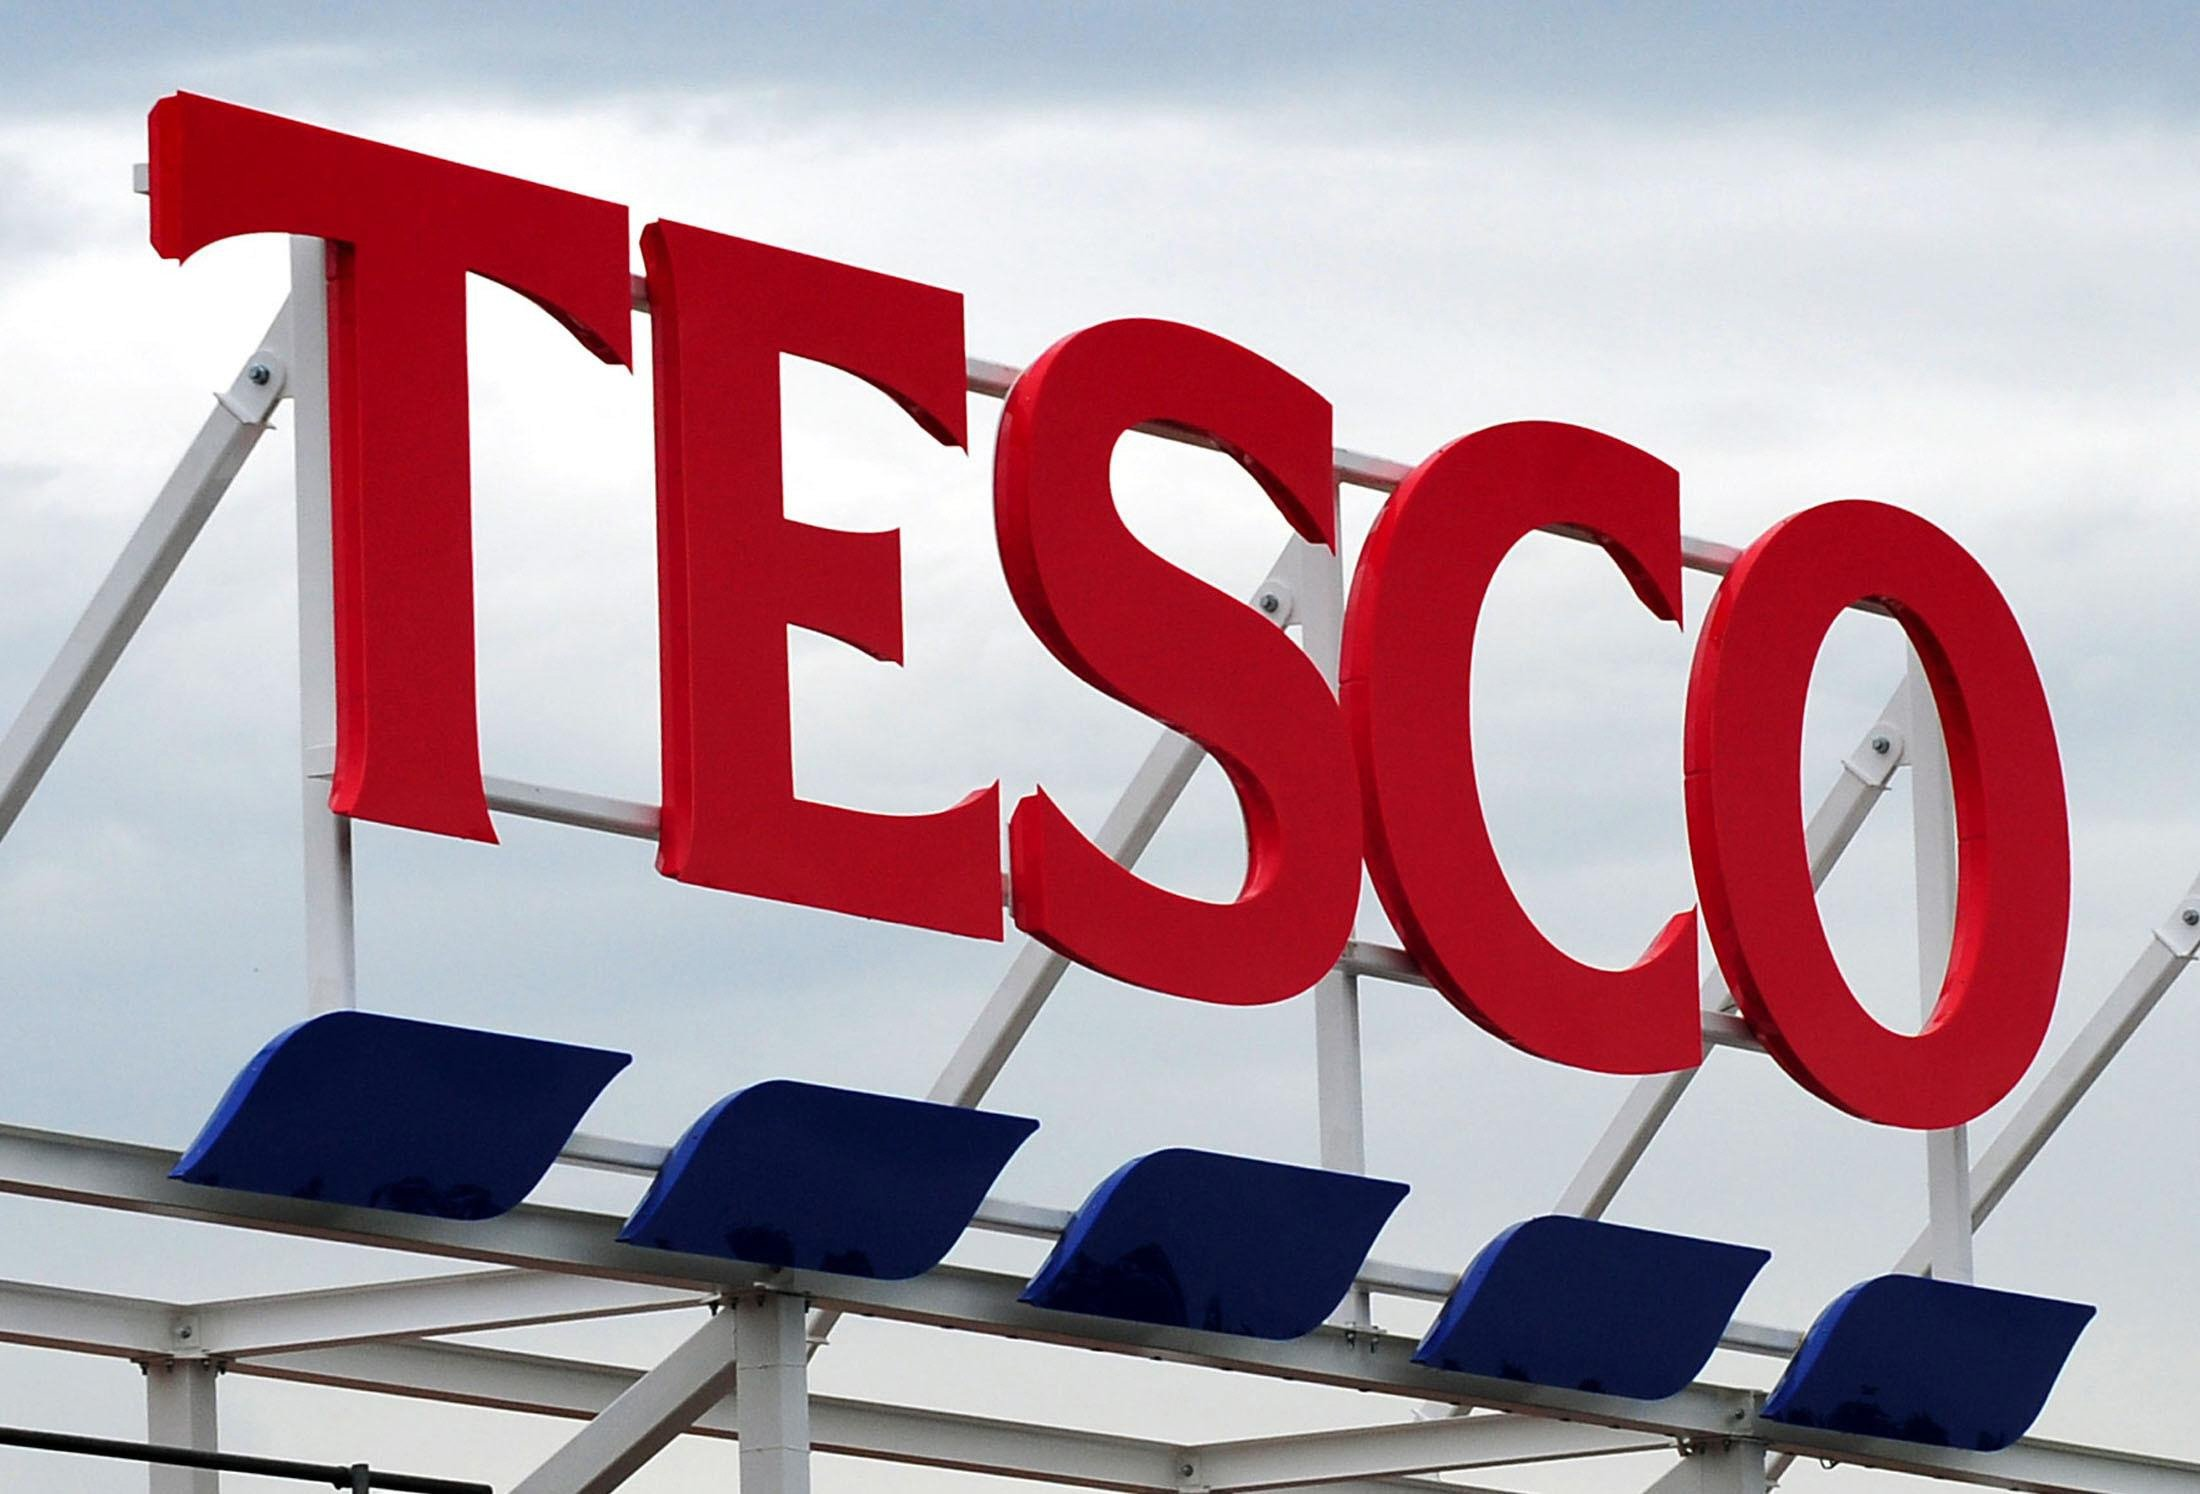 Tesco announces 1,000 job losses in major shake-up